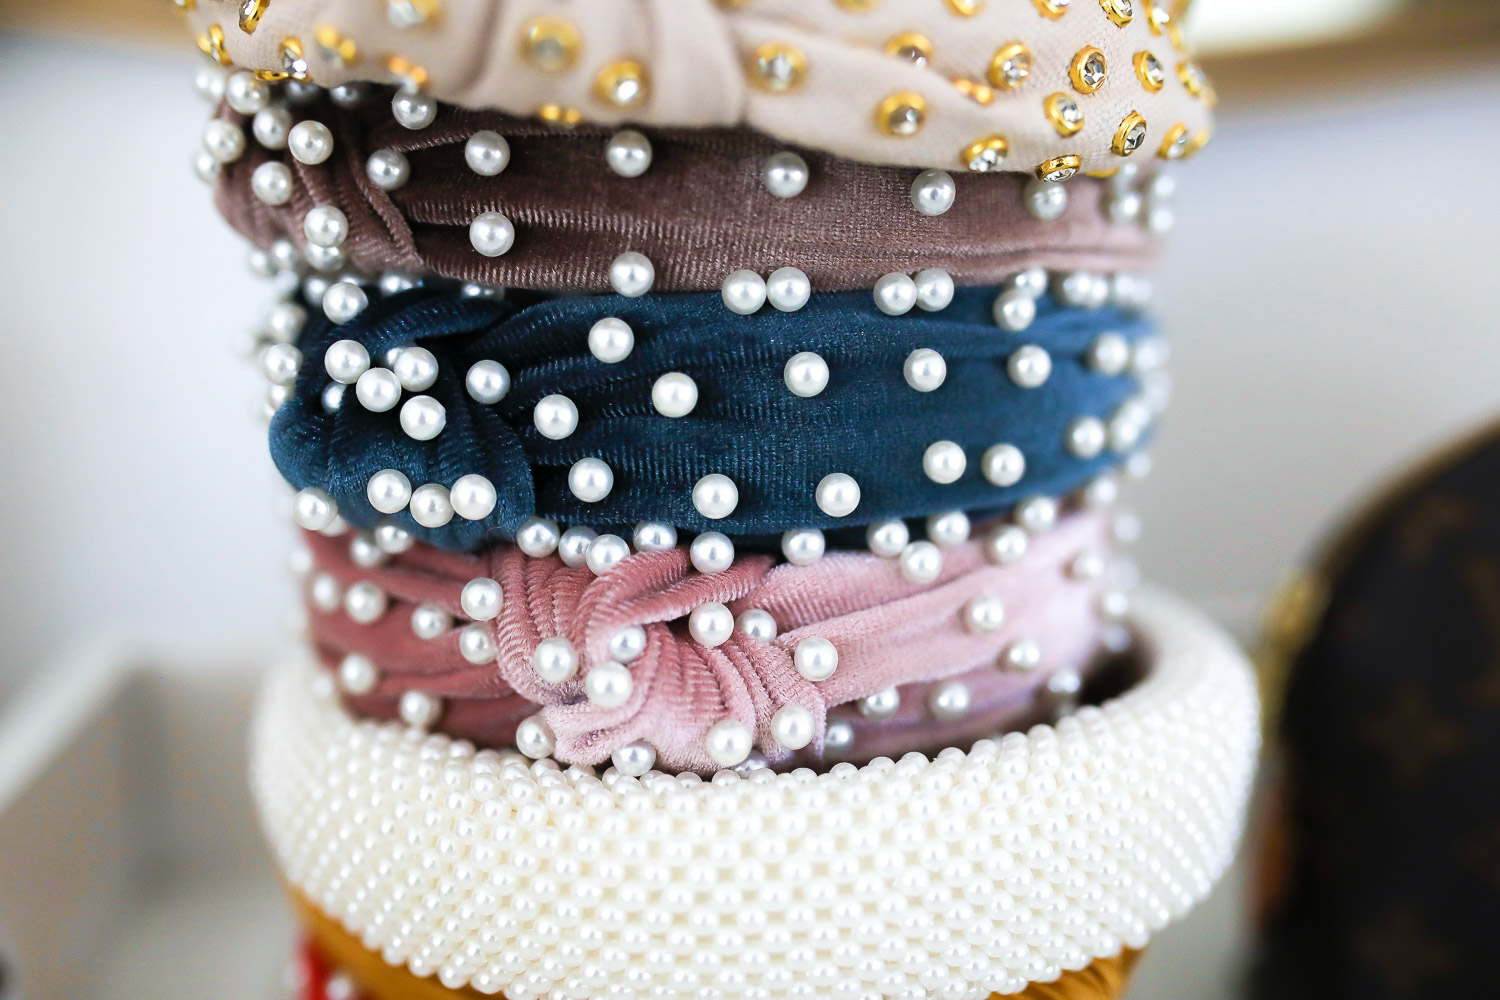 pearl velvet headband, swig marble cup insulated, top amazon must haves, amazon best buys 2020, emily gemma, amazon prime must haves blog post,_-4 | Amazon Prime Favorites by popular US life and style blog, The Sweetest Thing: image of Amazon Prime pearl headbands.